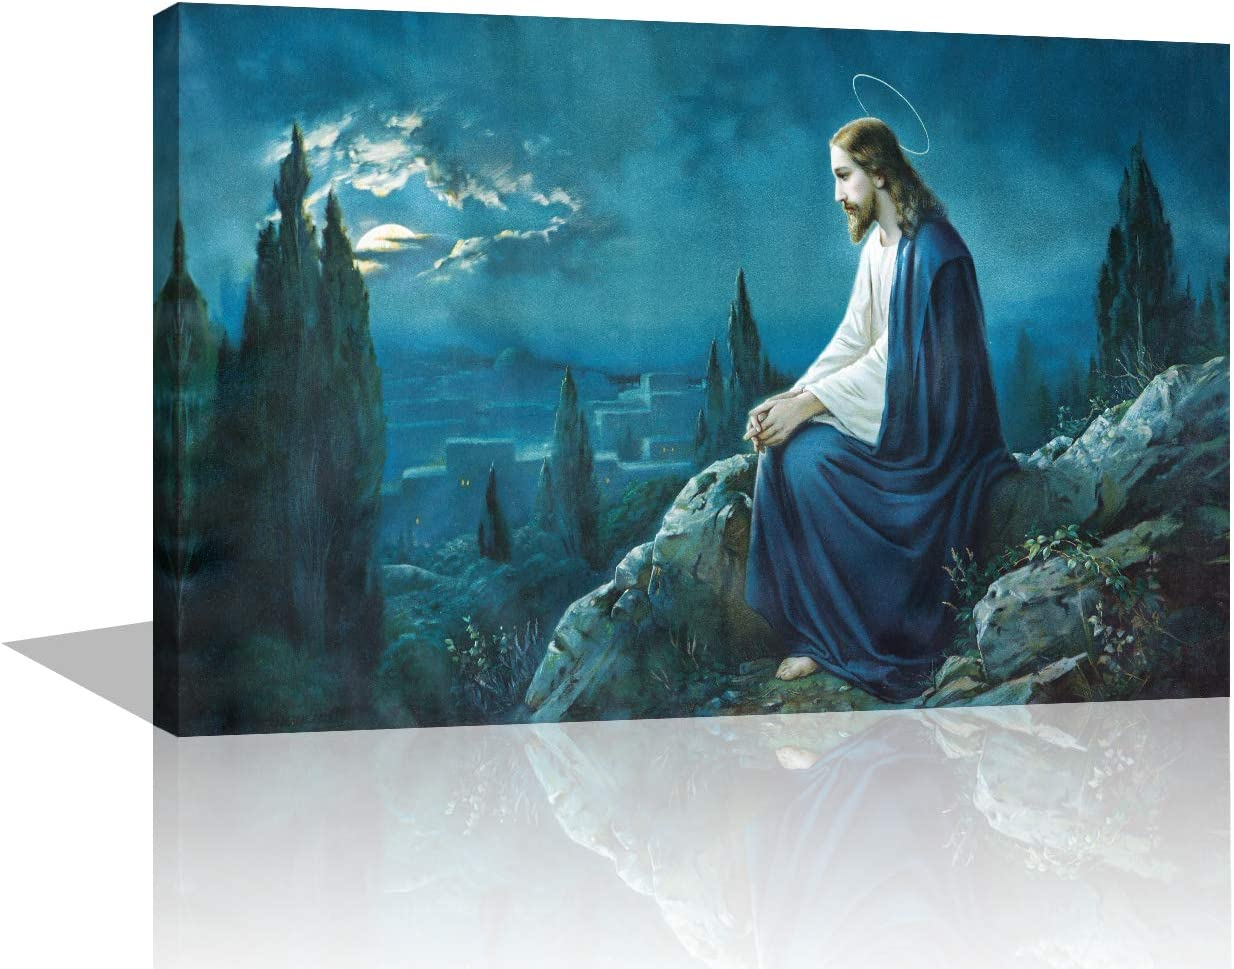 Jesus in Gethsemane Paintings Extra Large Wall Pictures for Living Room Jesus in Garden Artwork Framed 1 Panel Artwork Print On Canvas Home Decor Modern Gallery-Wrapped Ready to Hang (16''X24'')